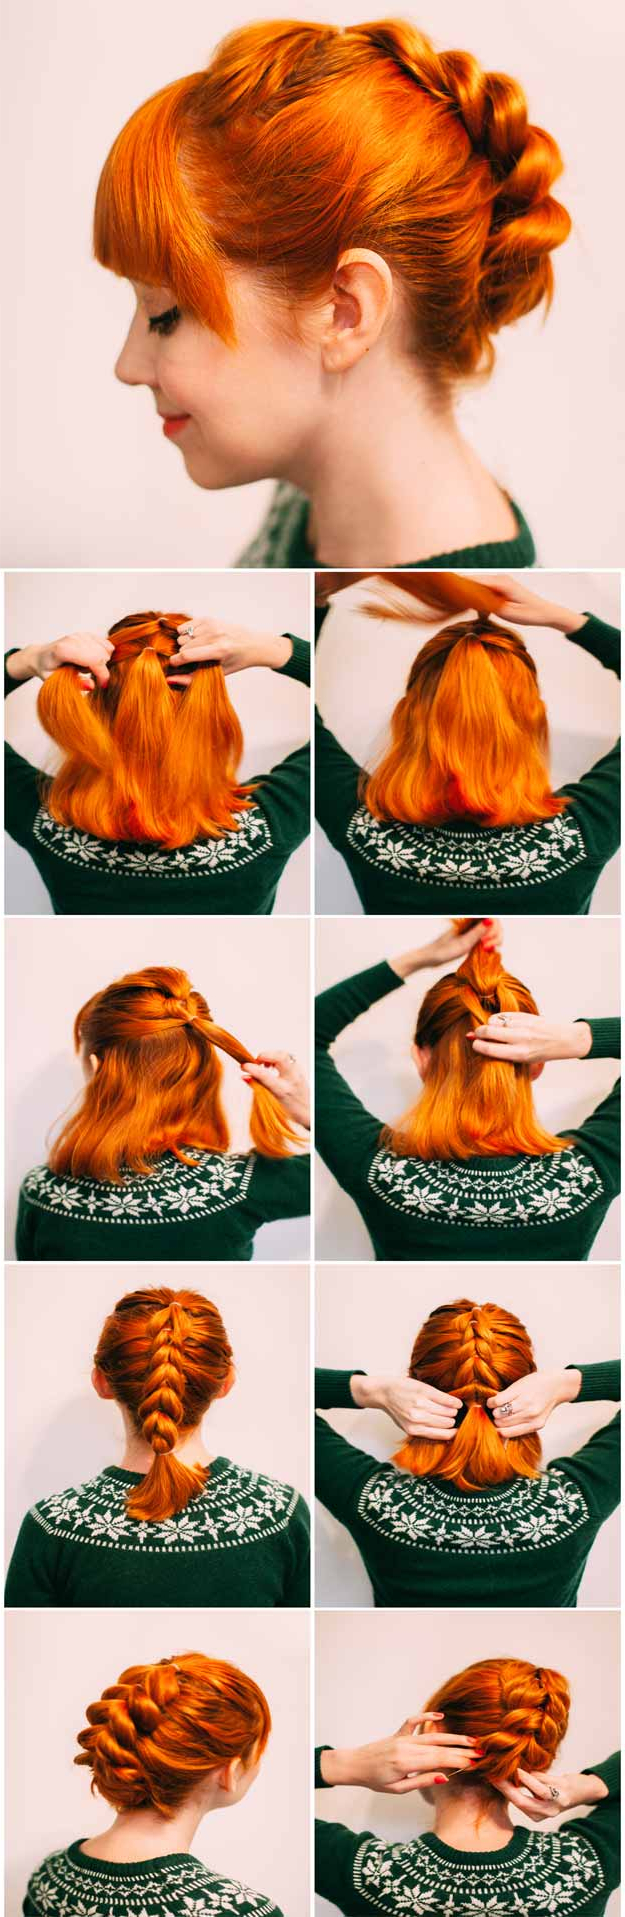 31 Wedding Hairstyles For Long Hair – The Goddess Within Most Recently Released Red, Orange And Yellow Half Updo Hairstyles (Gallery 17 of 20)